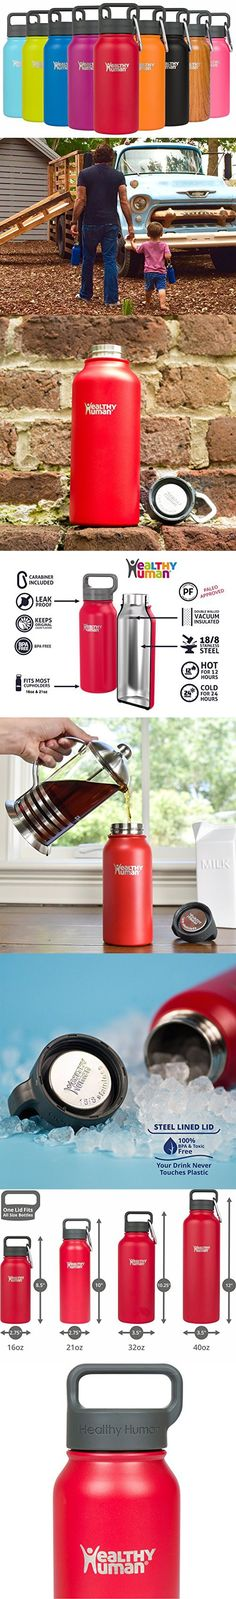 Healthy Human 16 oz Water Bottle - Cold 24 Hrs, Hot 12 Hrs. 4 Sizes & 12 Colors. Double Walled Vacuum Insulated Stainless Steel Thermos Flask with Carabiner & Hydro Guide. Color: Red Hot